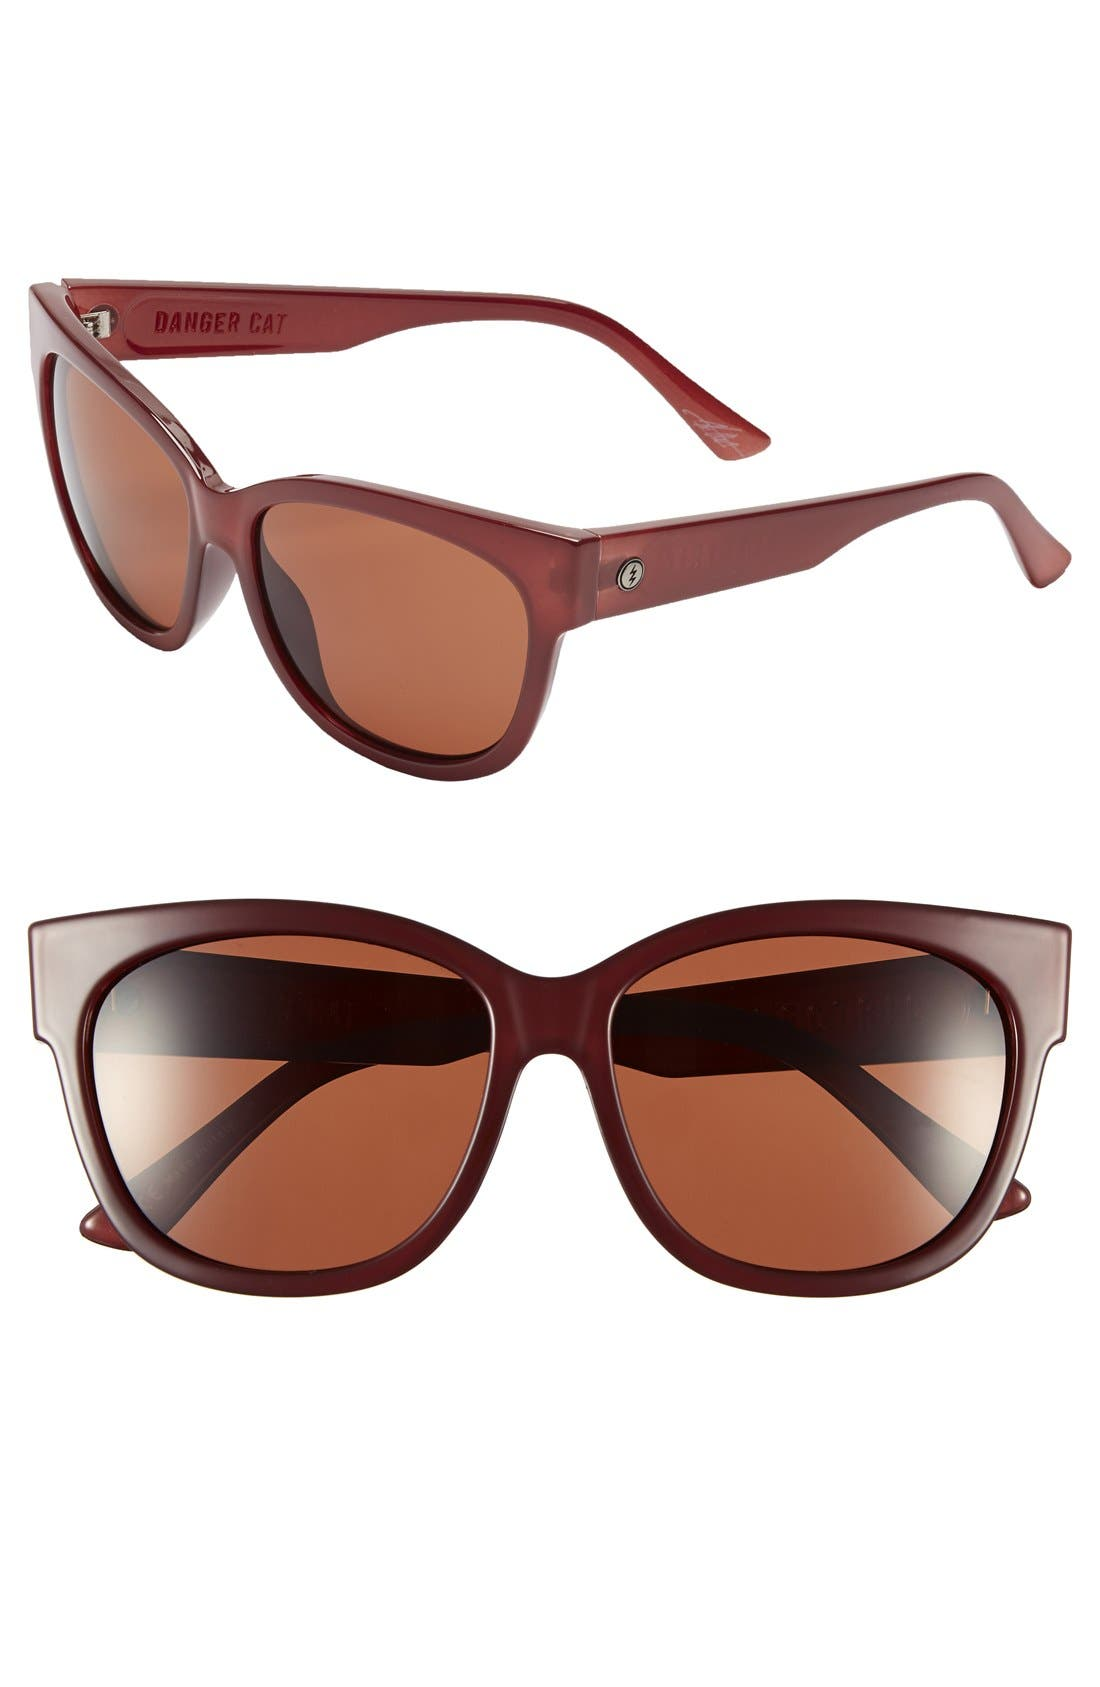 'Danger Cat' 58mm Retro Sunglasses,                             Main thumbnail 1, color,